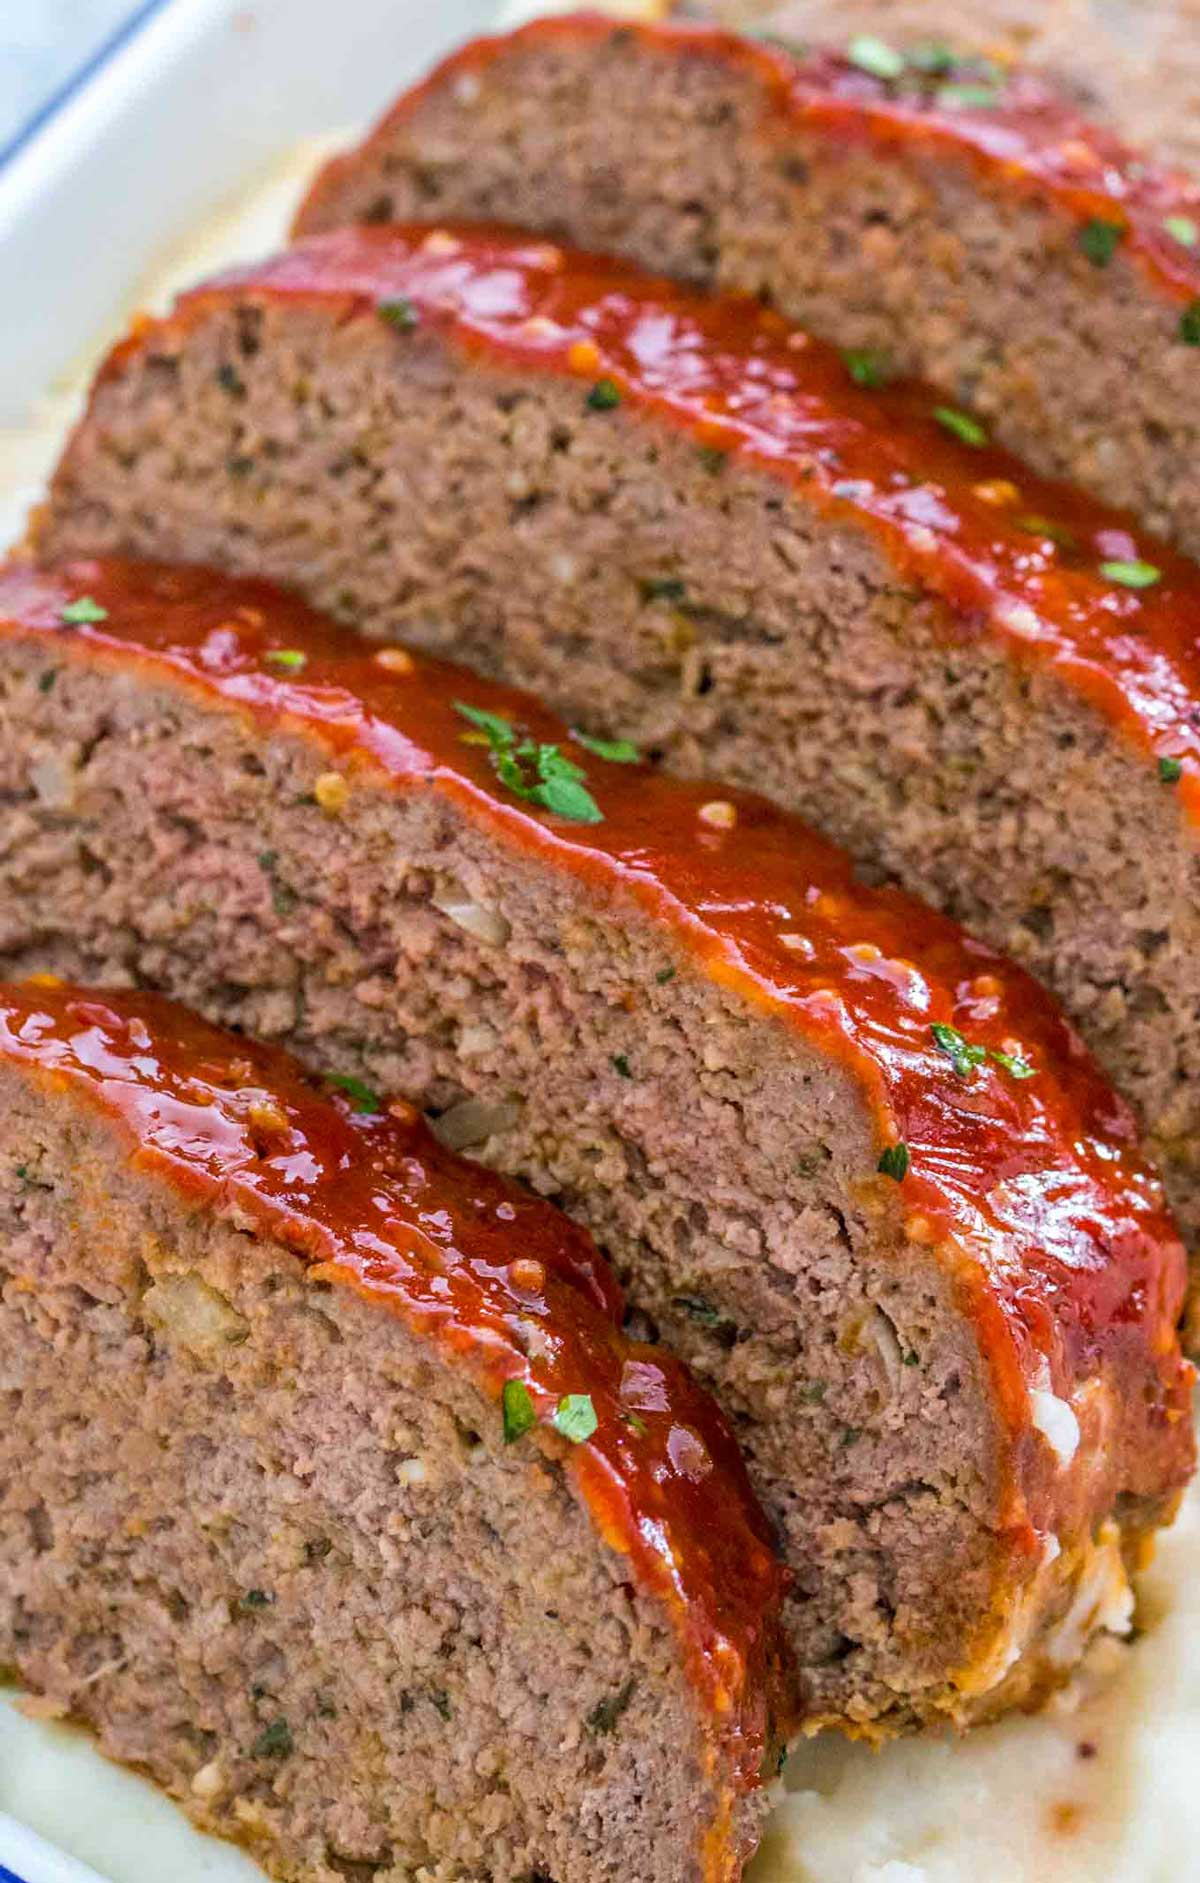 2 Lb Meatloaf Recipe With Crackers : meatloaf, recipe, crackers, Meatloaf, Recipe, [VIDEO], Sweet, Savory, Meals